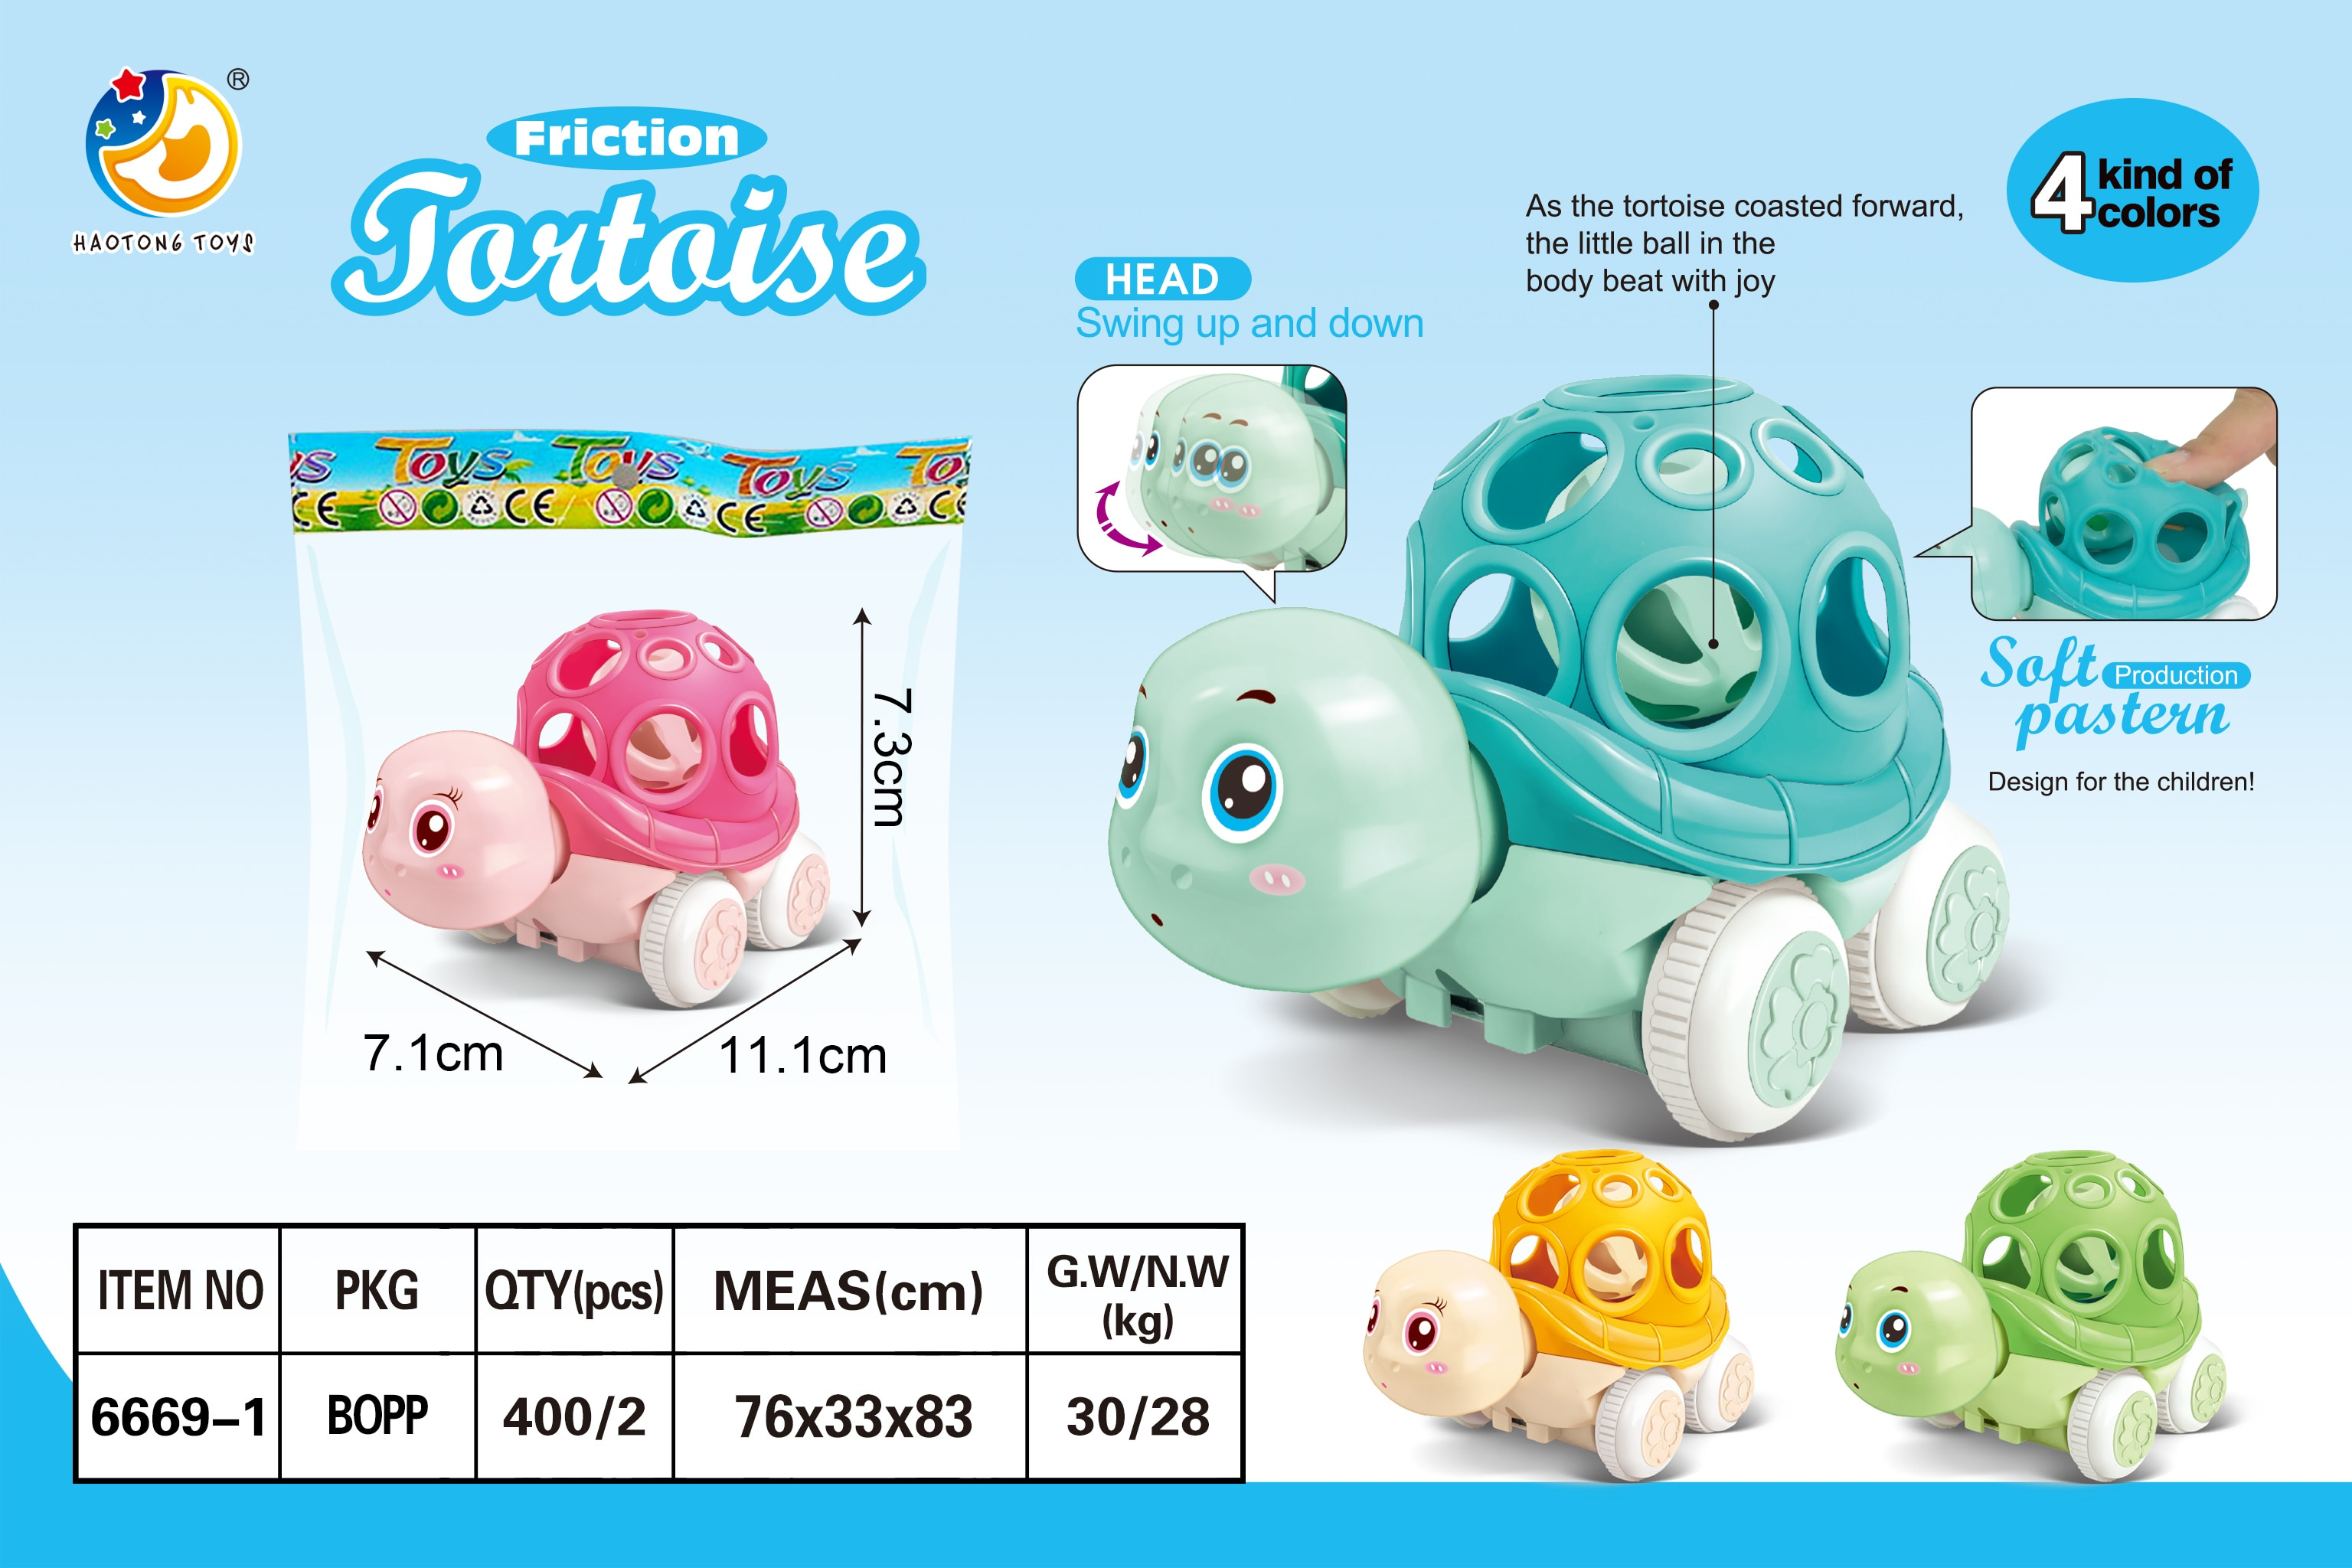 BLL Sample 4PCS Intertial Soft-Shelled Turtle 4 Color Inertial Toys And Gift for Children Boys